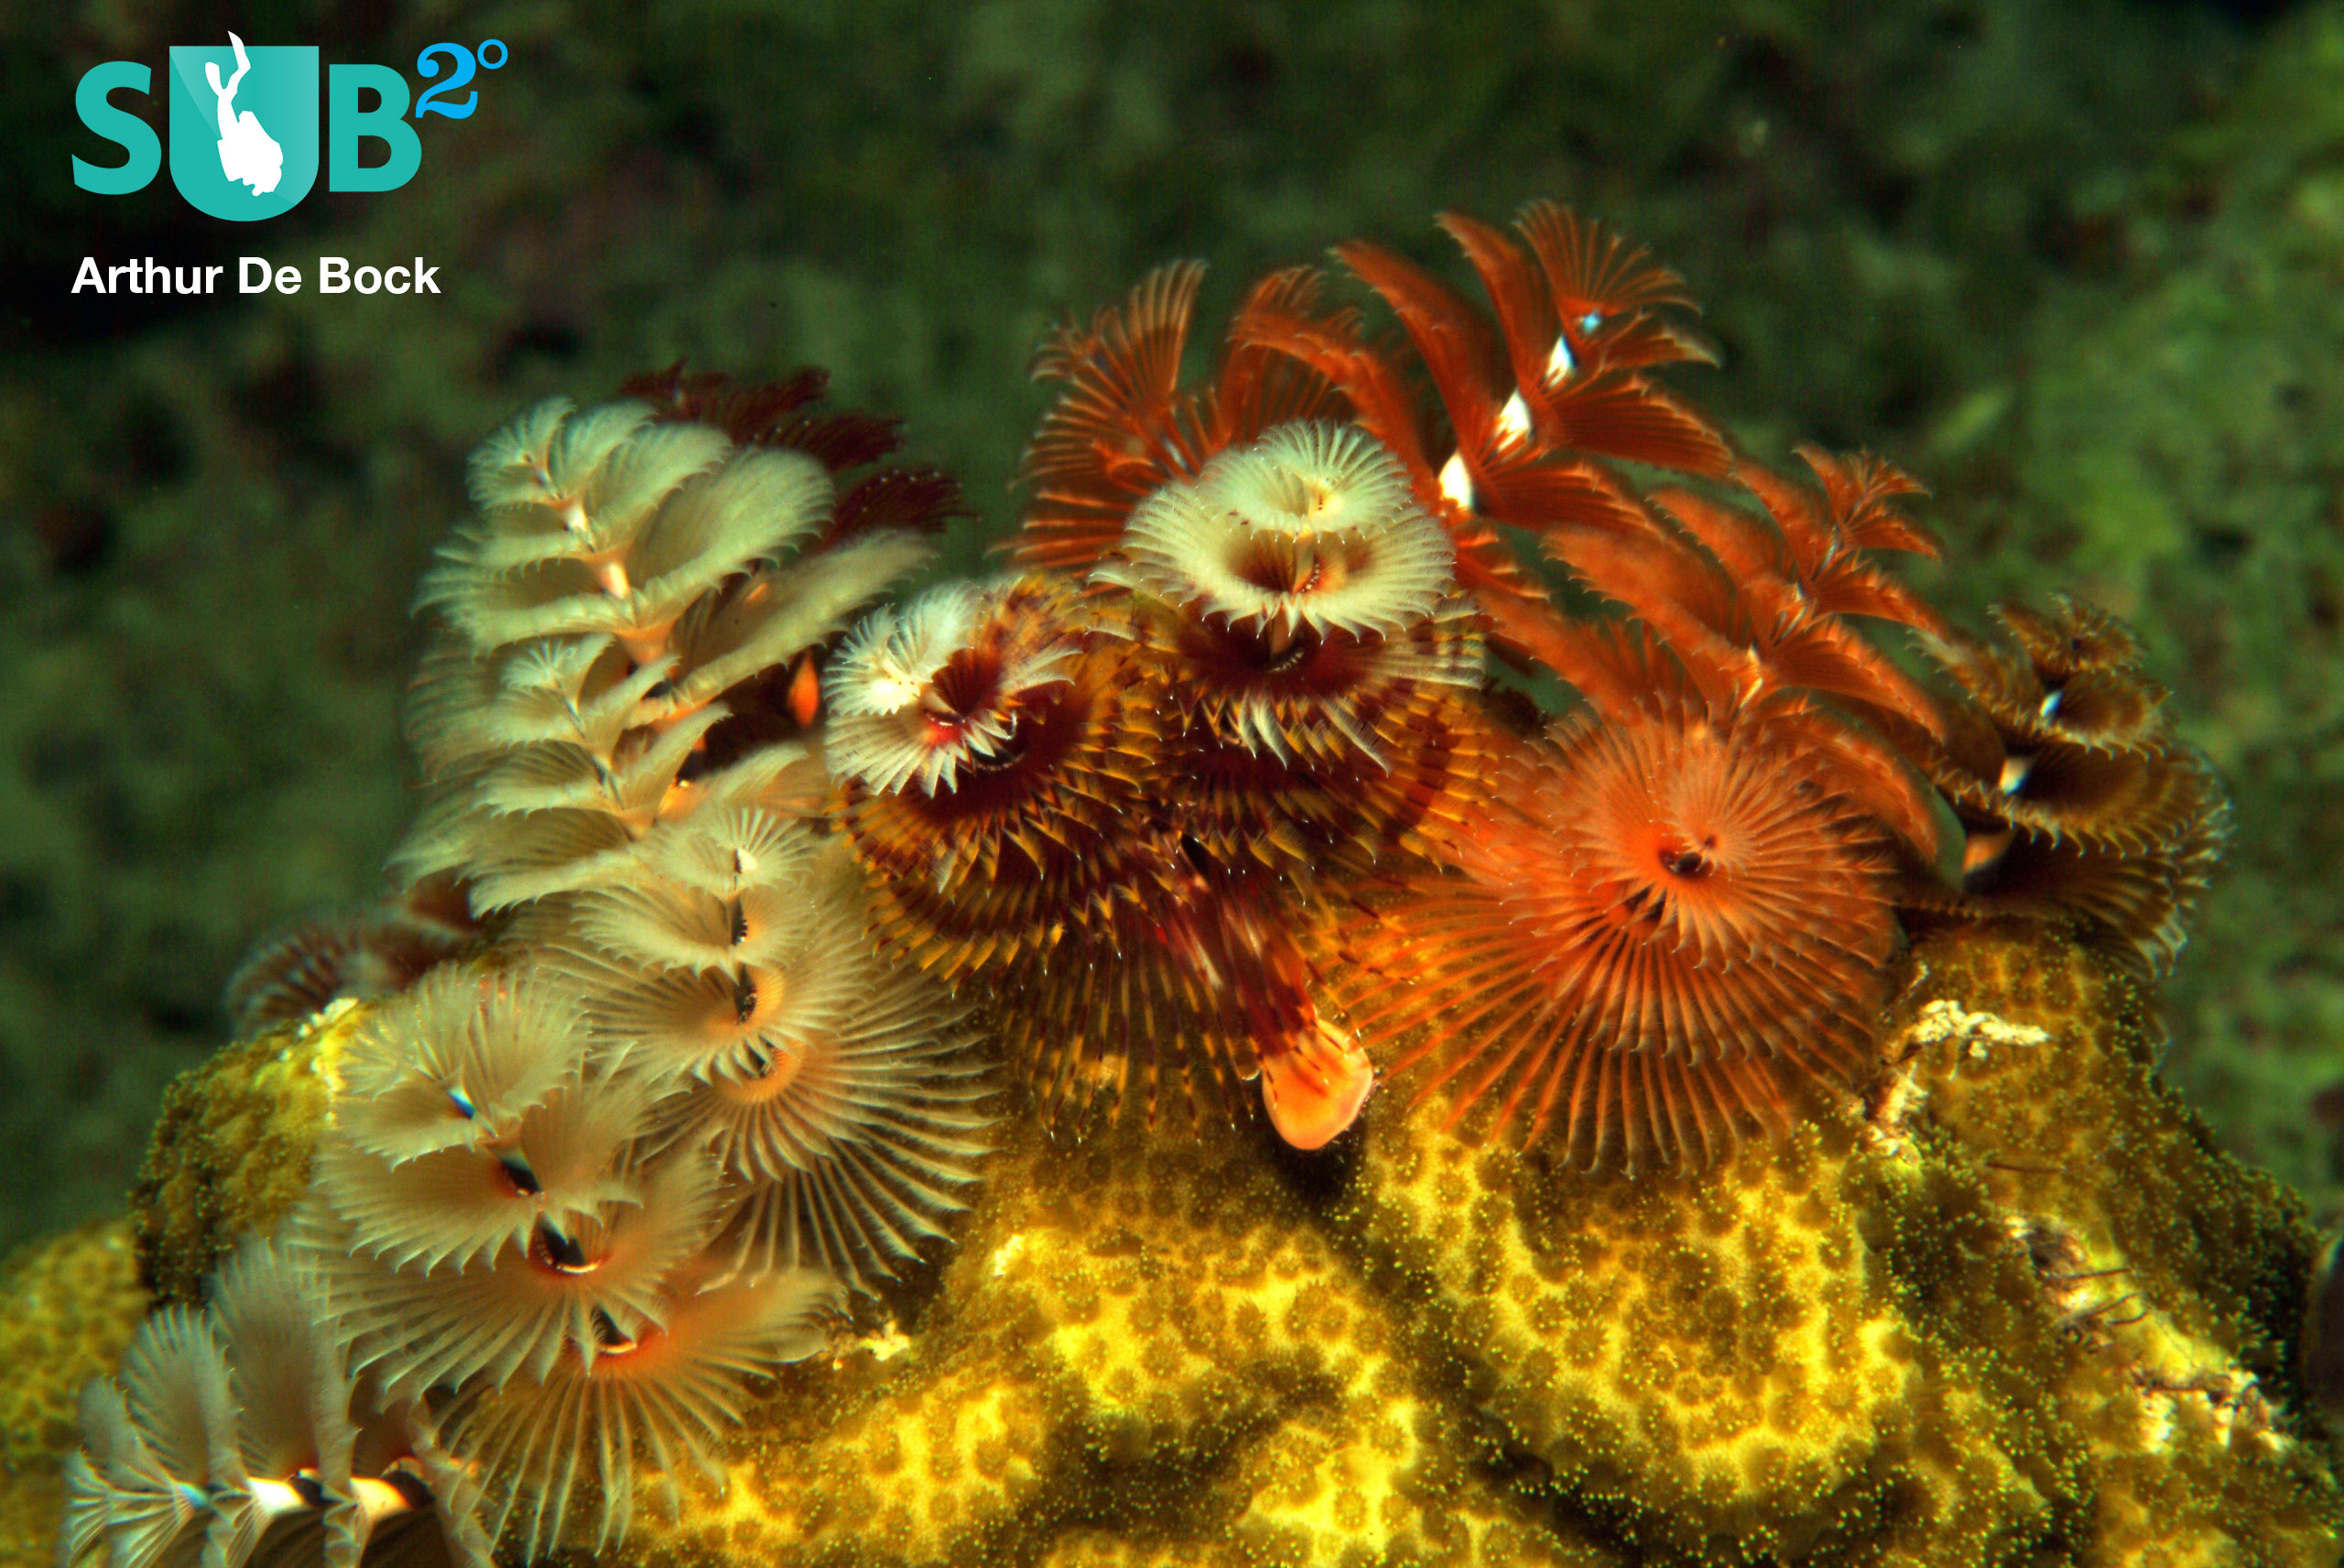 A coral reef just wouldn't be the same without Christmas Tree Worms (Spirobranchus giganteus).